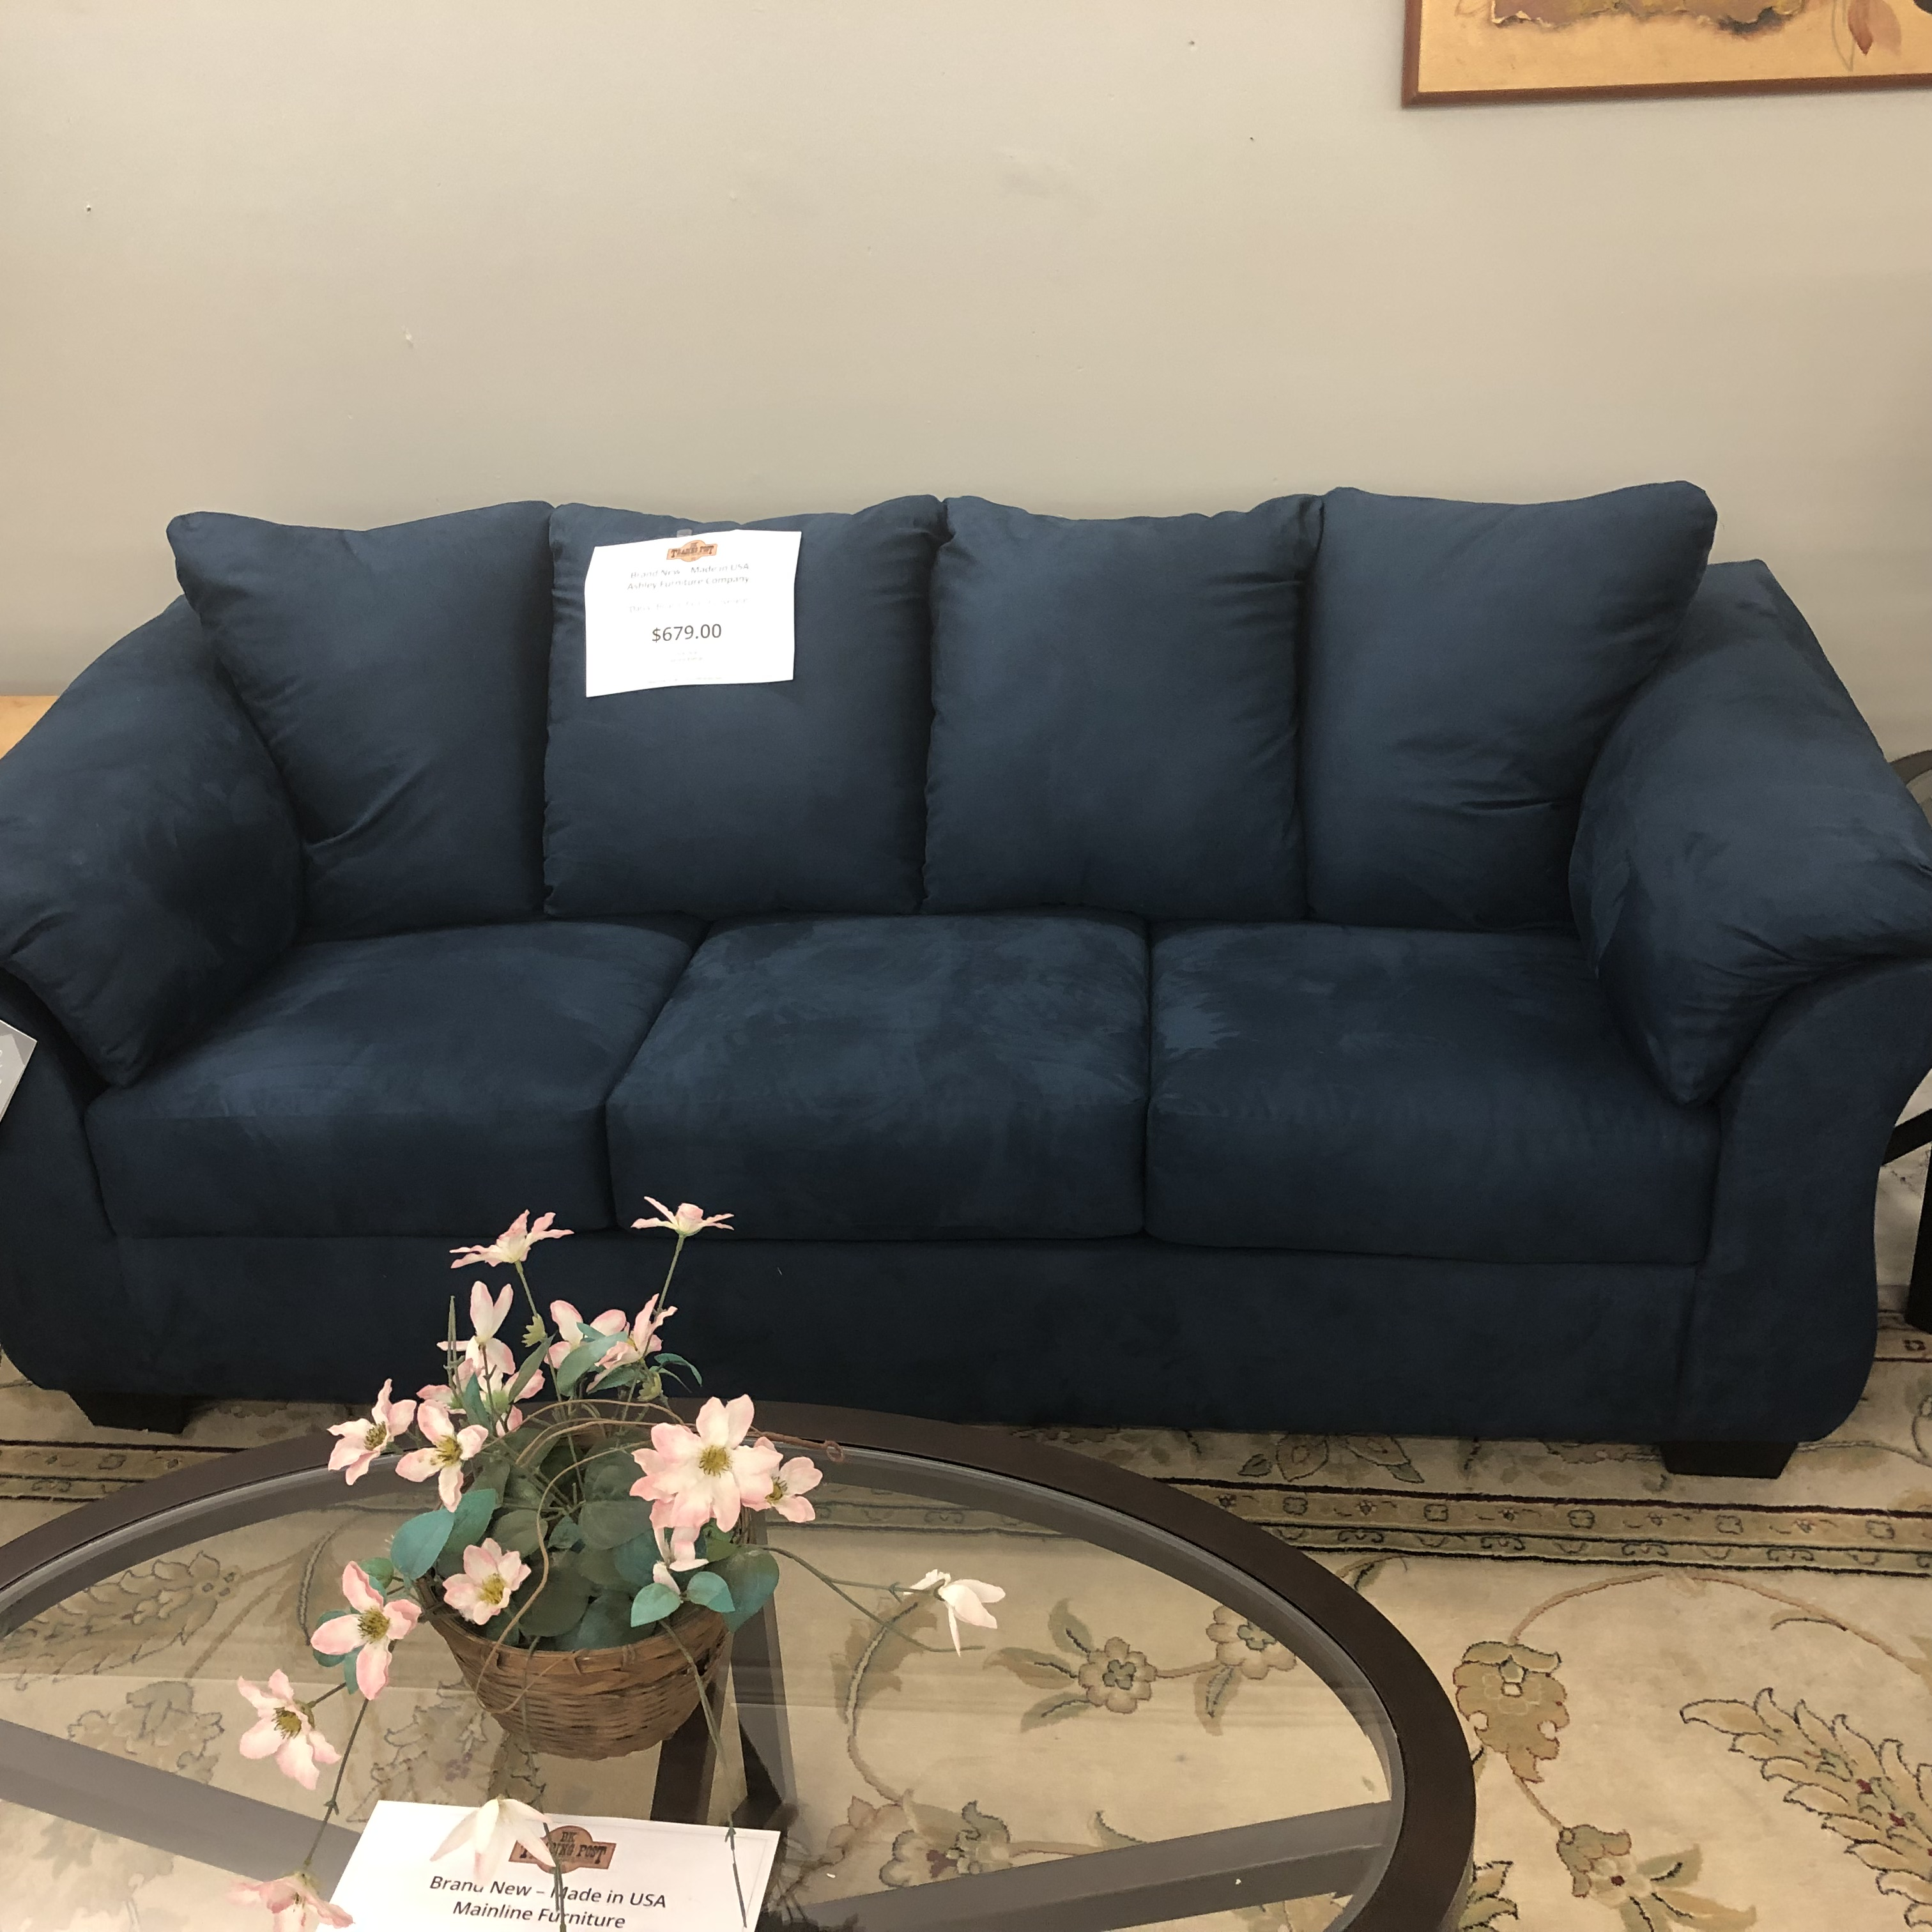 Marvelous New Furniture Brand New Ashley Darcy Sofa And Loveseat Dailytribune Chair Design For Home Dailytribuneorg